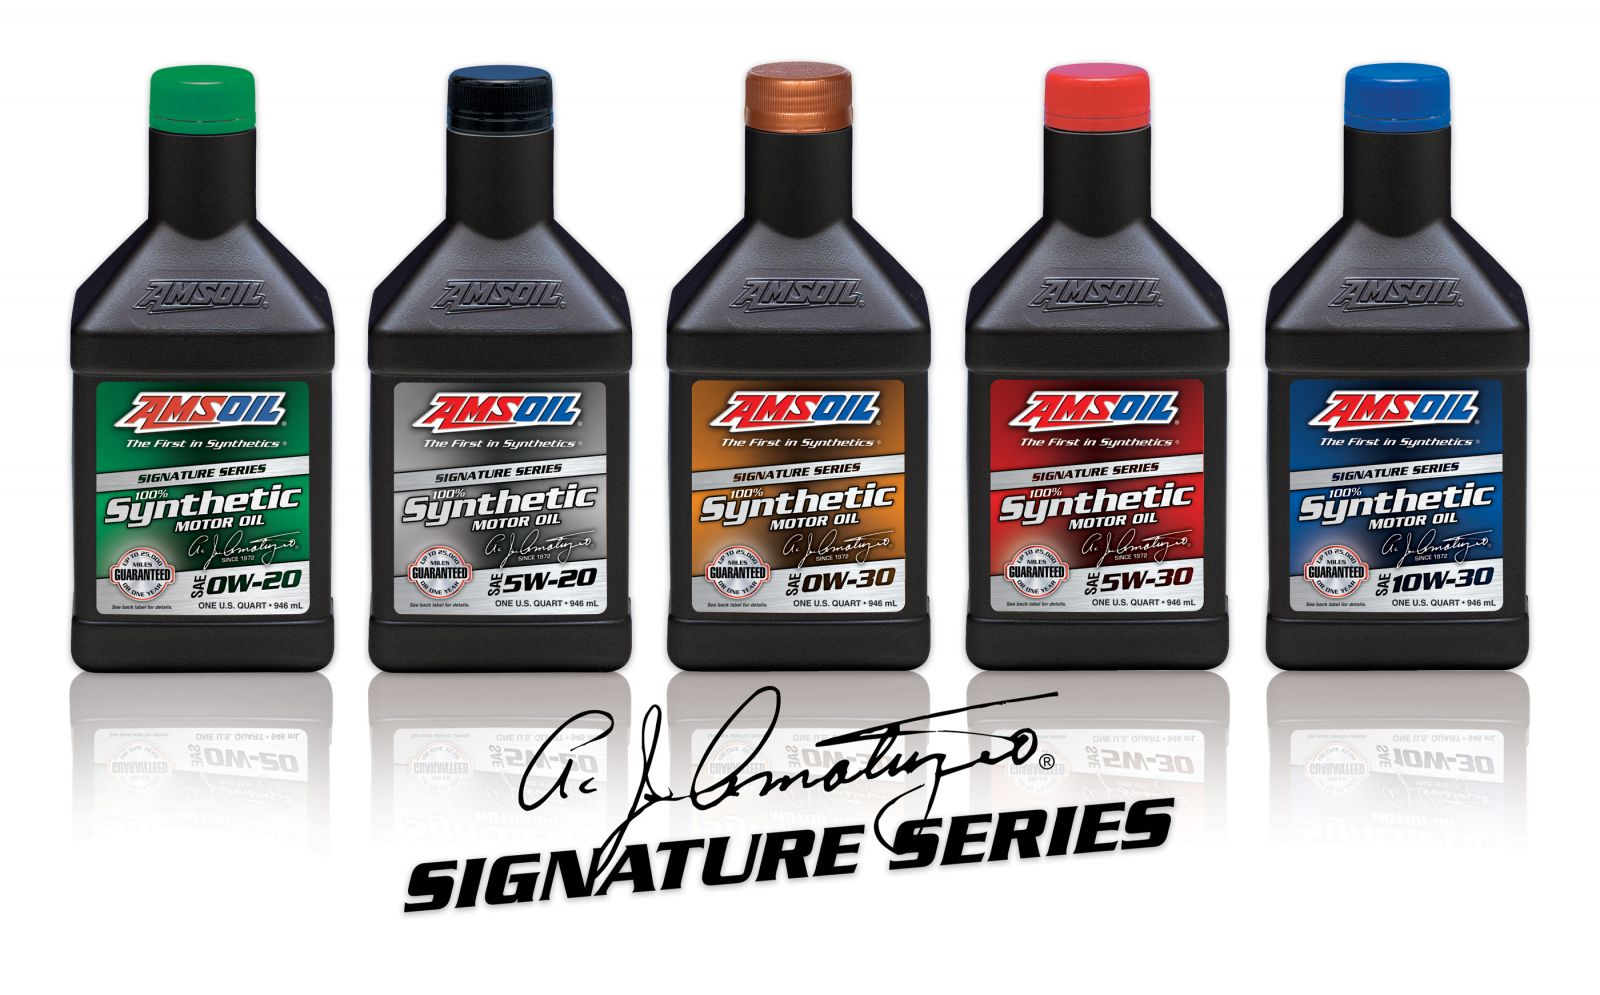 Amsoil singapore amsoil signature series for Amsoil signature series synthetic motor oil